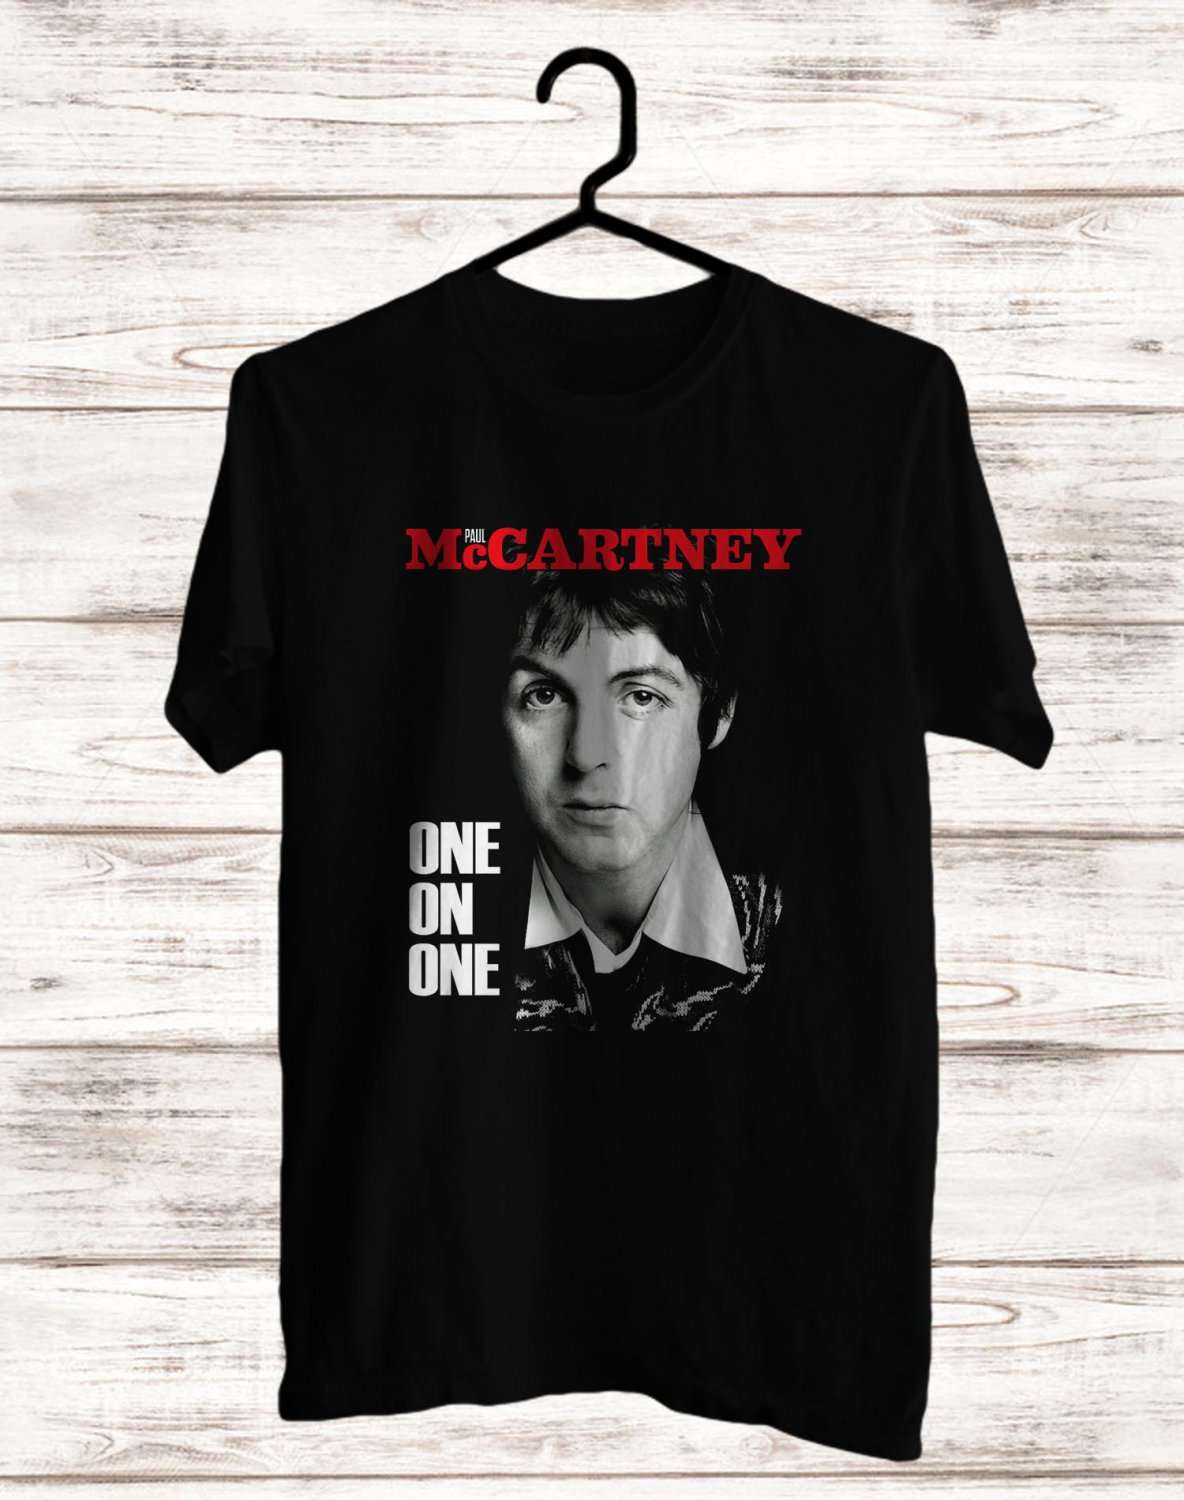 Paul McCartney One On One Tour 2017 Black Tee's  Front Side by Complexart c1